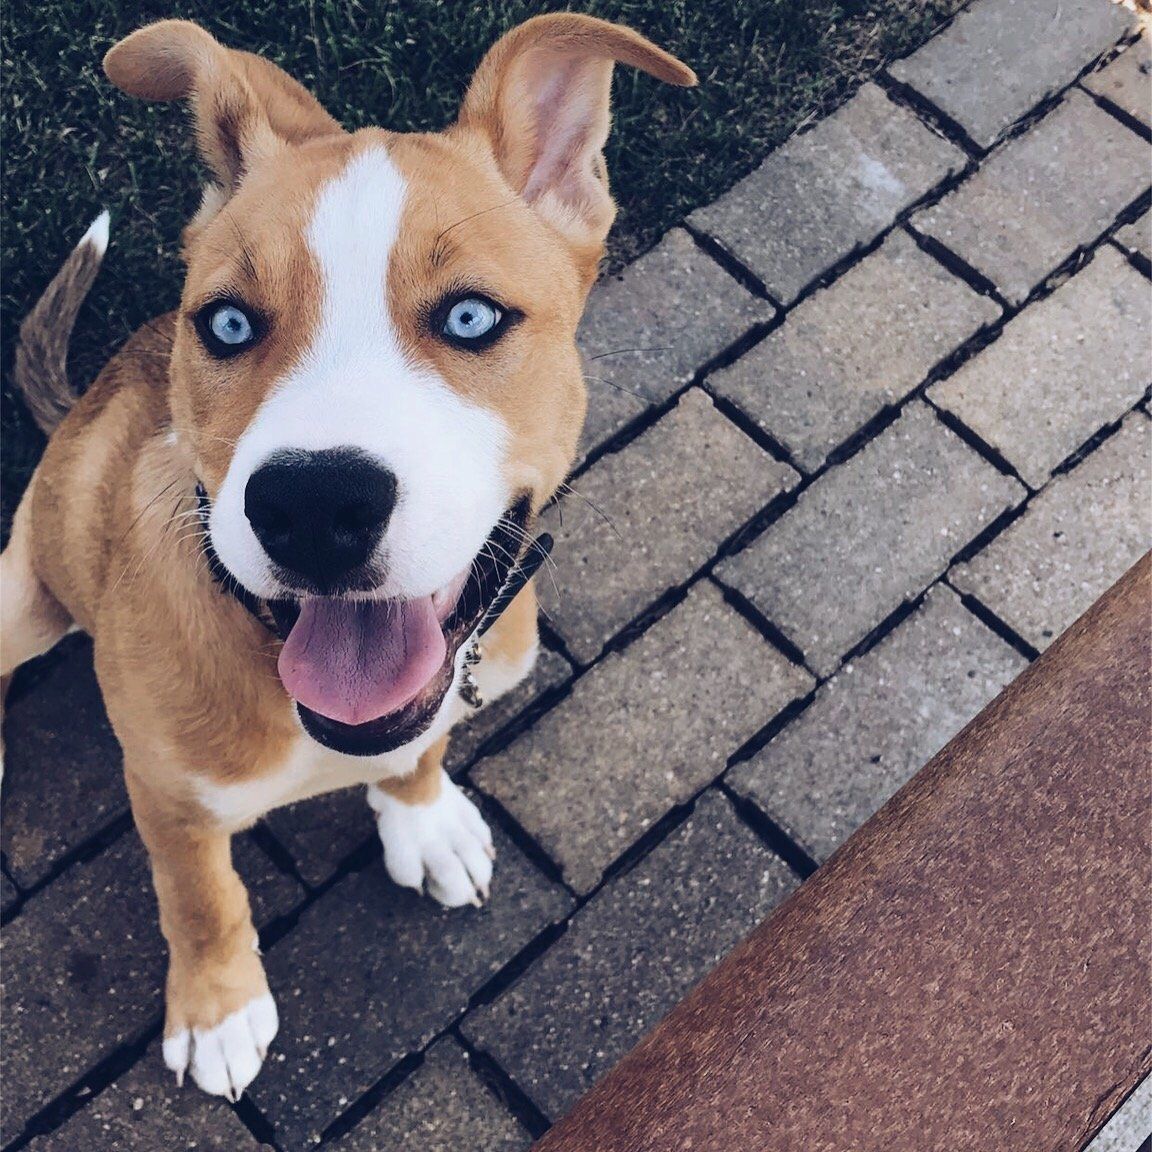 Pitbull Husky Mix A Quick Guide About The Of Mixed Pitbull And